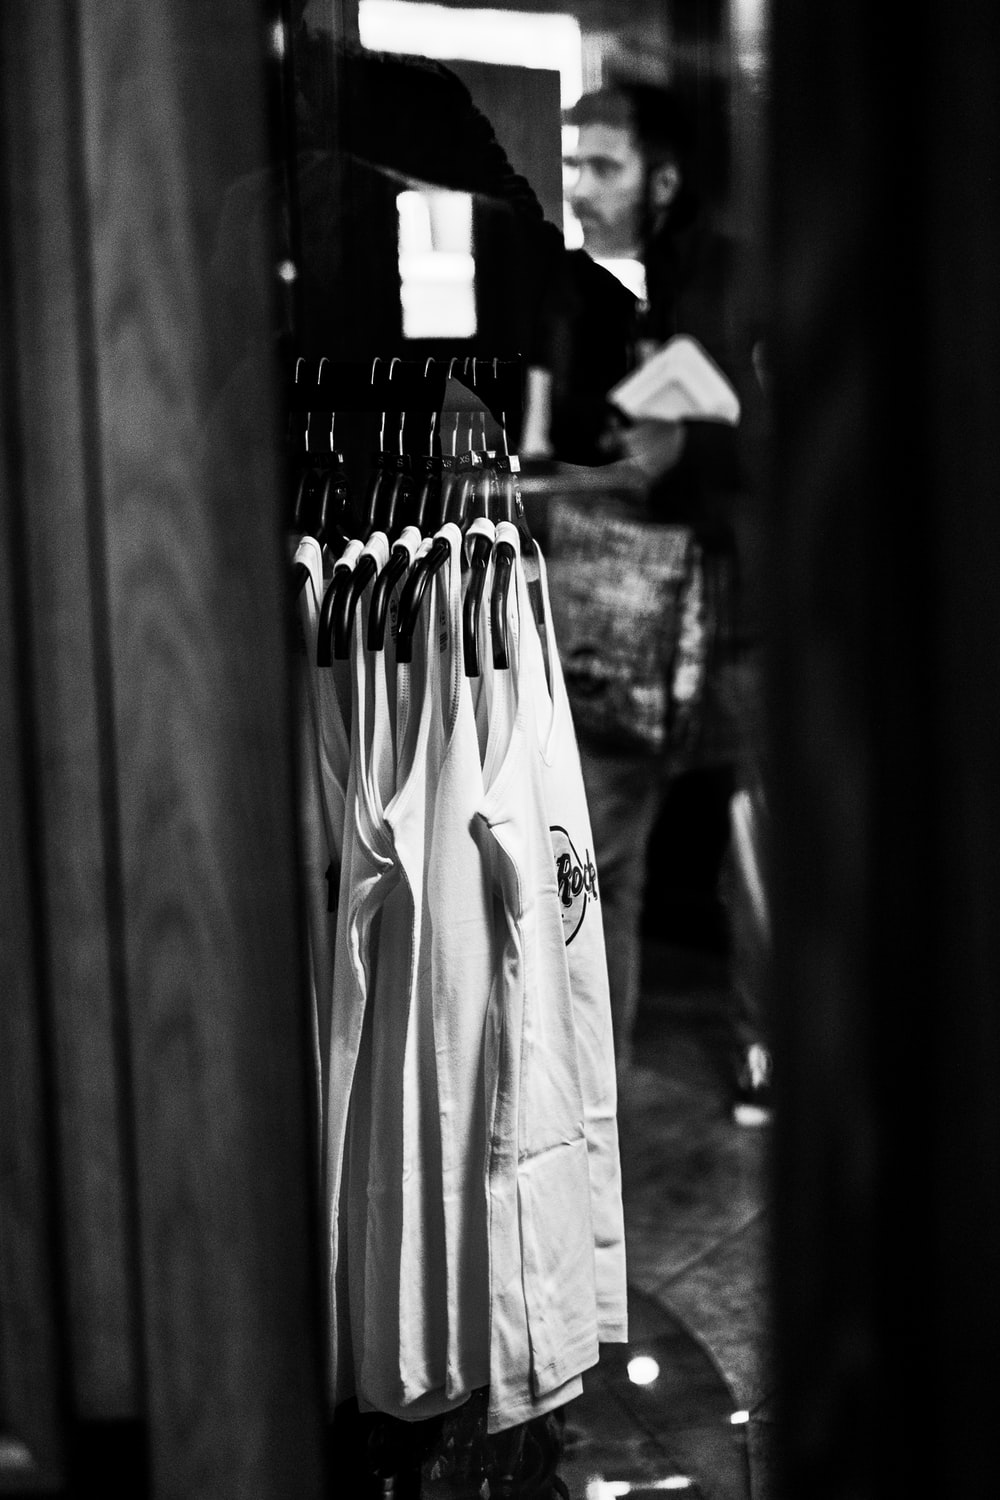 grayscale photo of hanged clothes